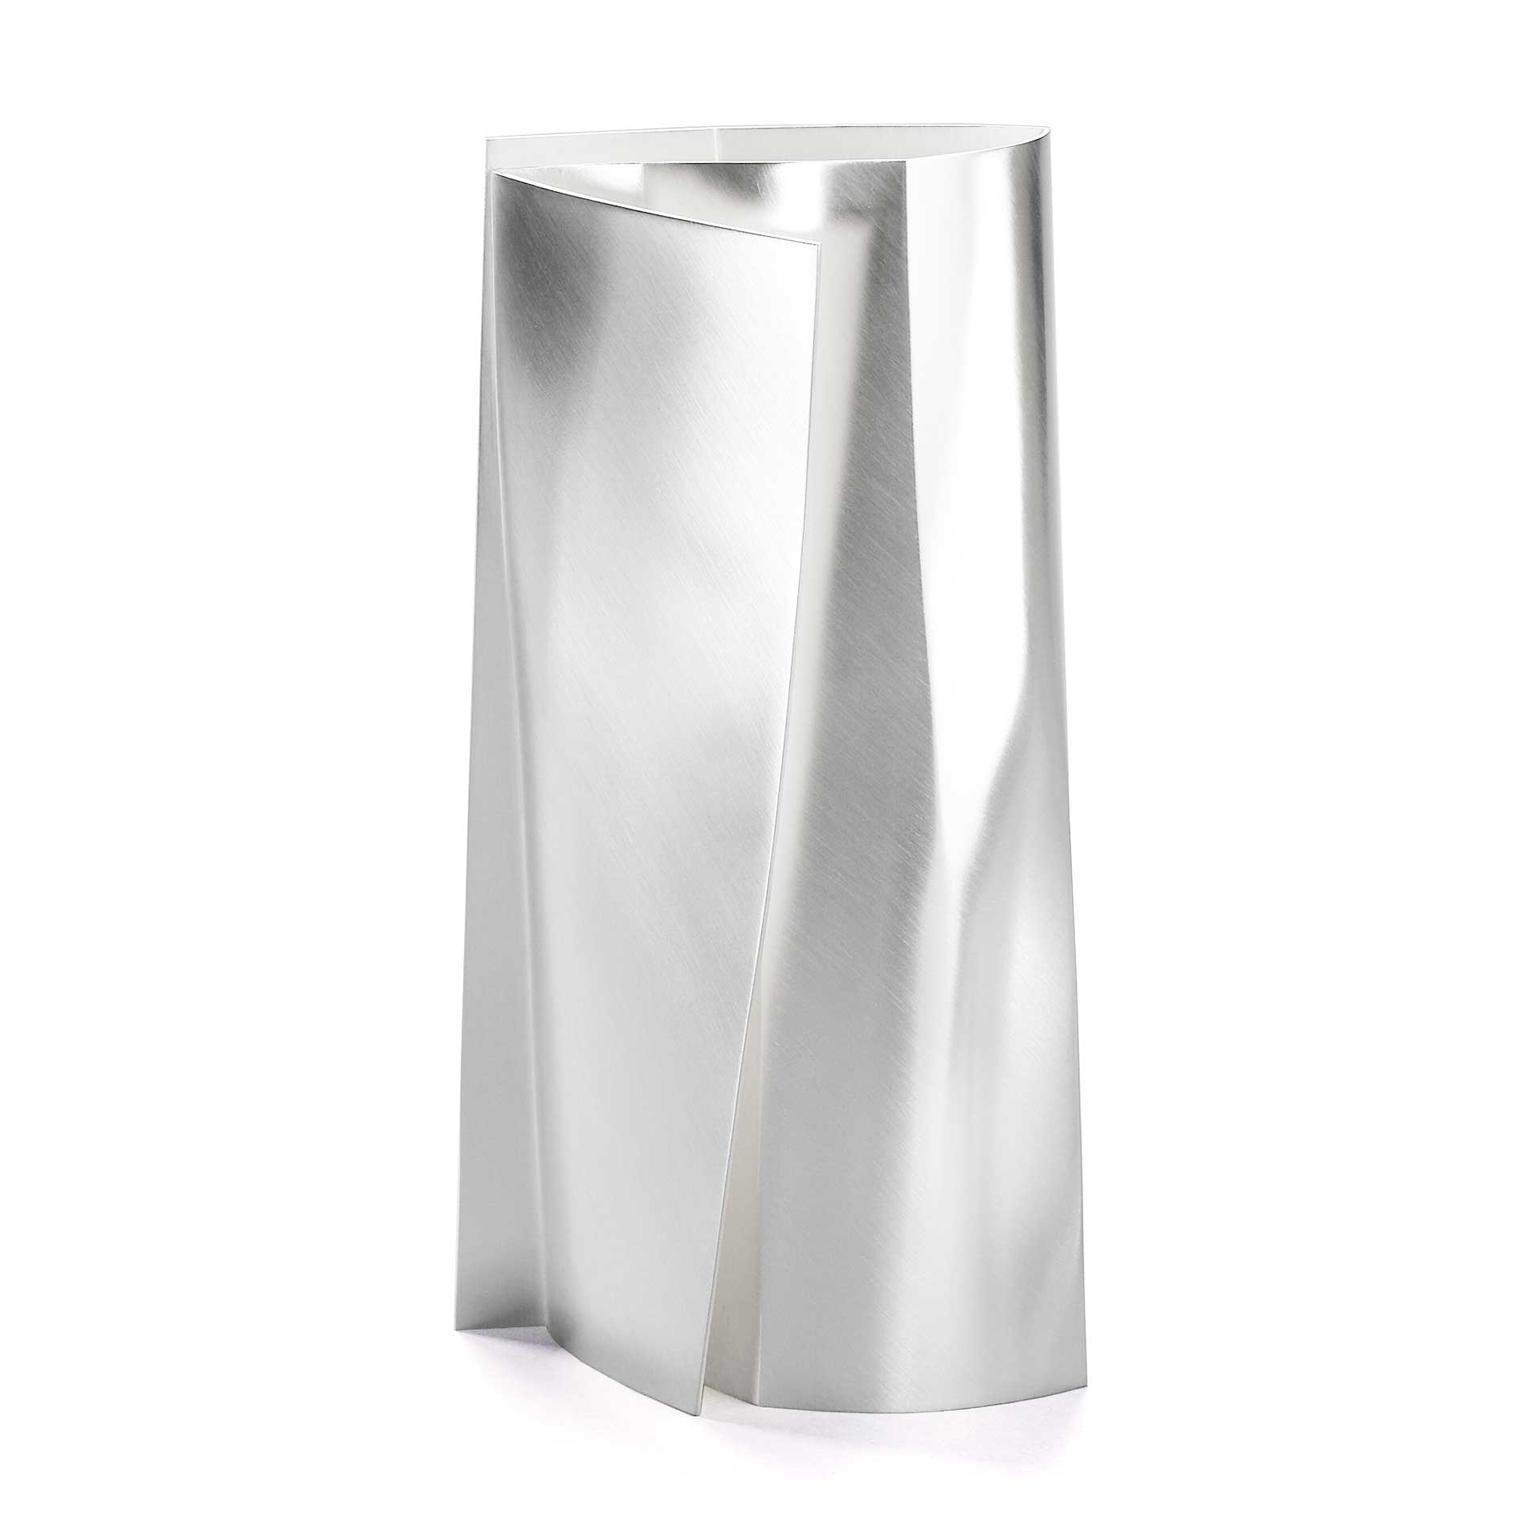 Esther Lord large Zigzag silver vase